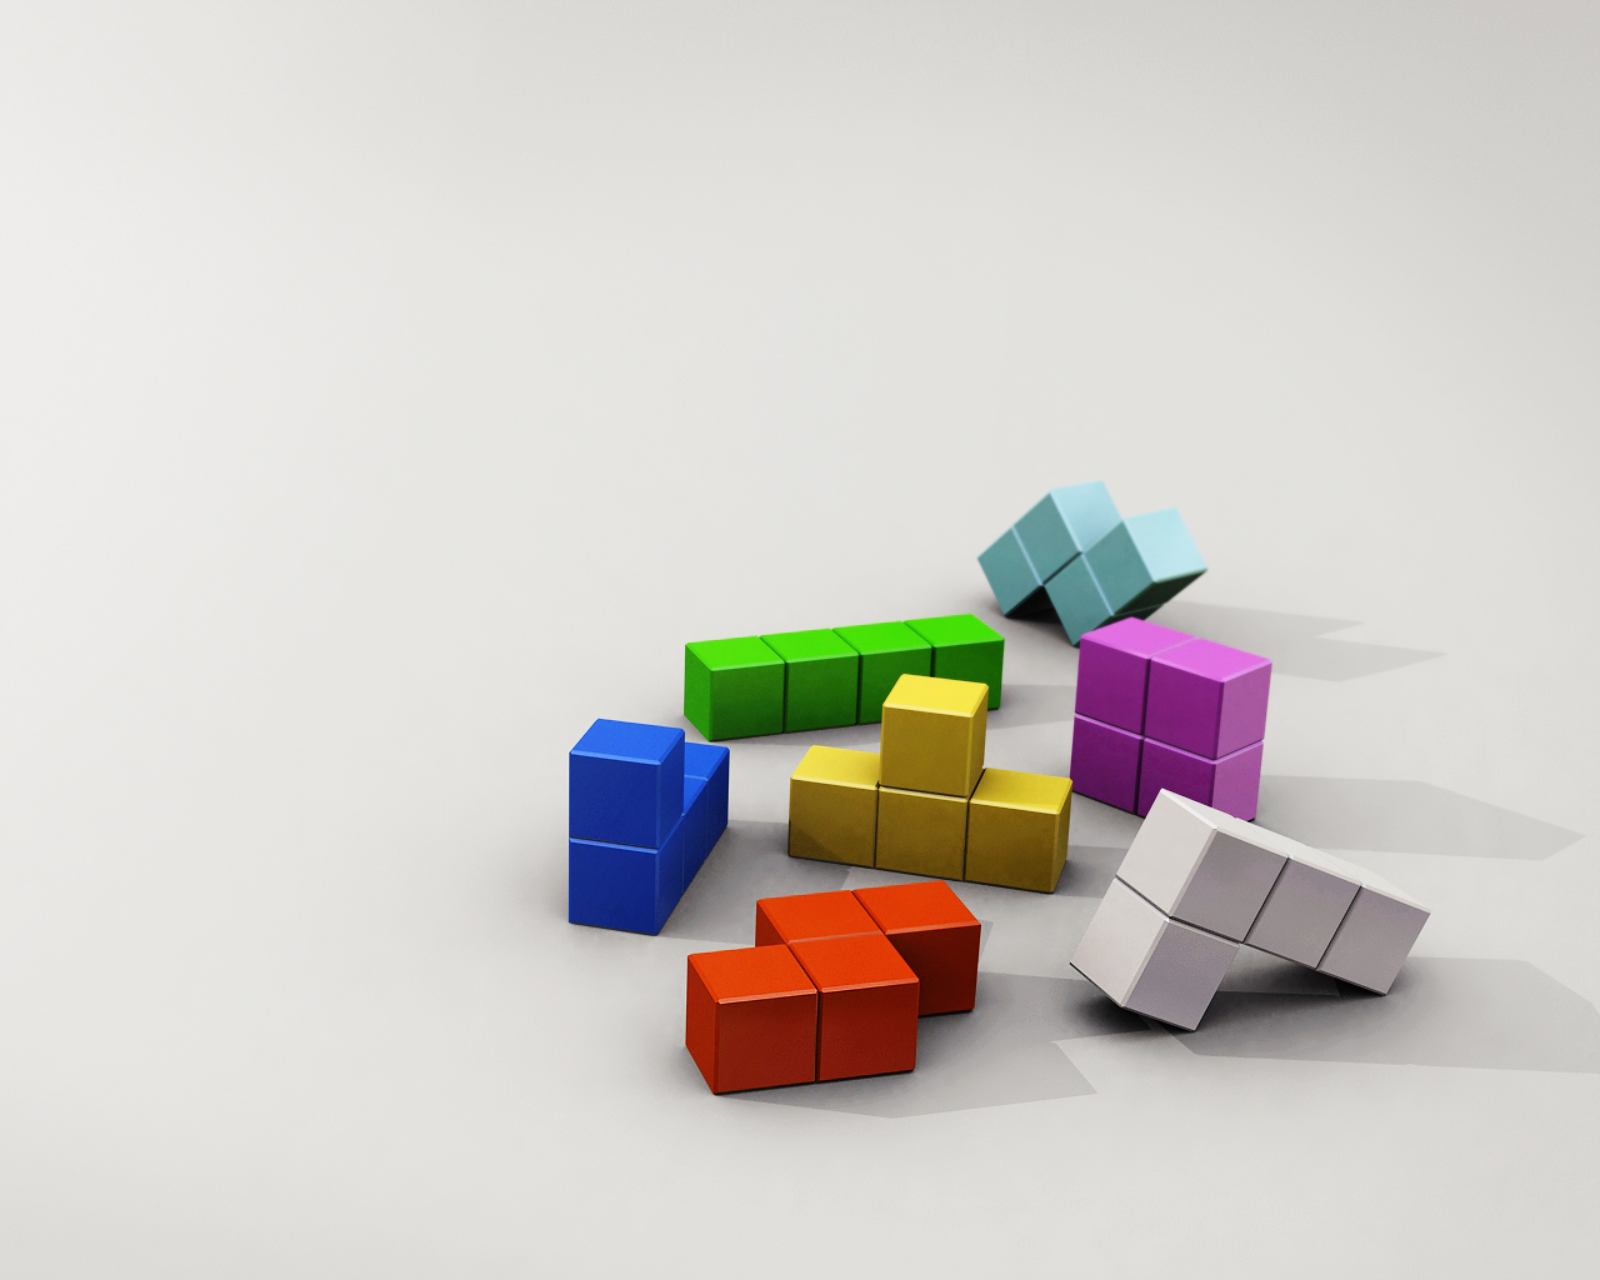 Tetris Colorful Blocks Cubes Hd Wallpapers Hd Wallpapers